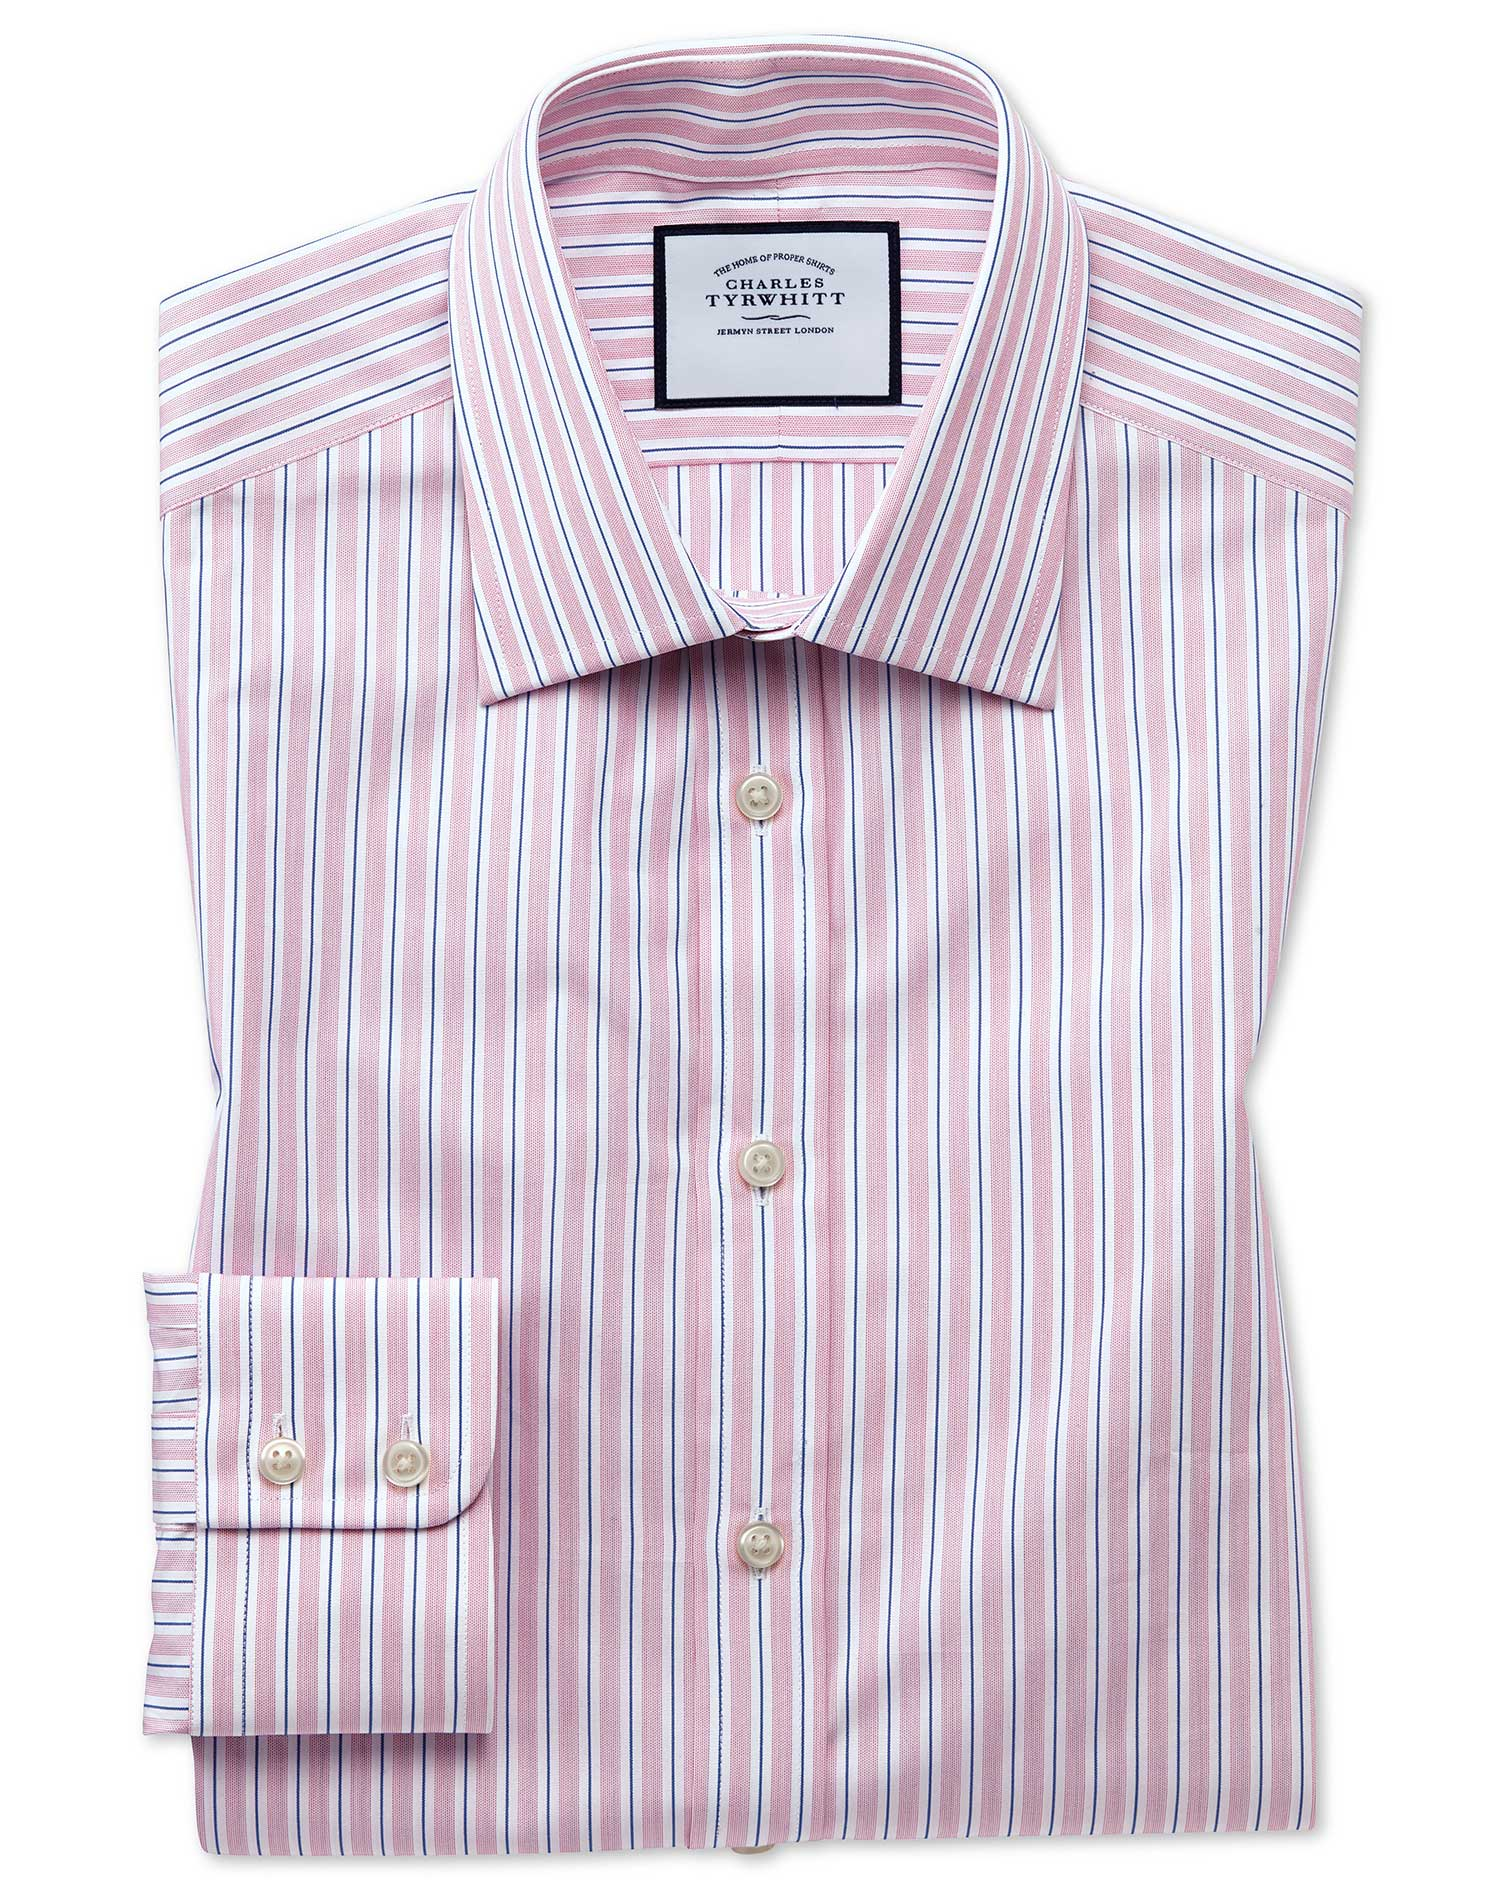 Classic Fit Egyptian Cotton Poplin Pink Stripe Formal Shirt Single Cuff Size 17/35 by Charles Tyrwhi